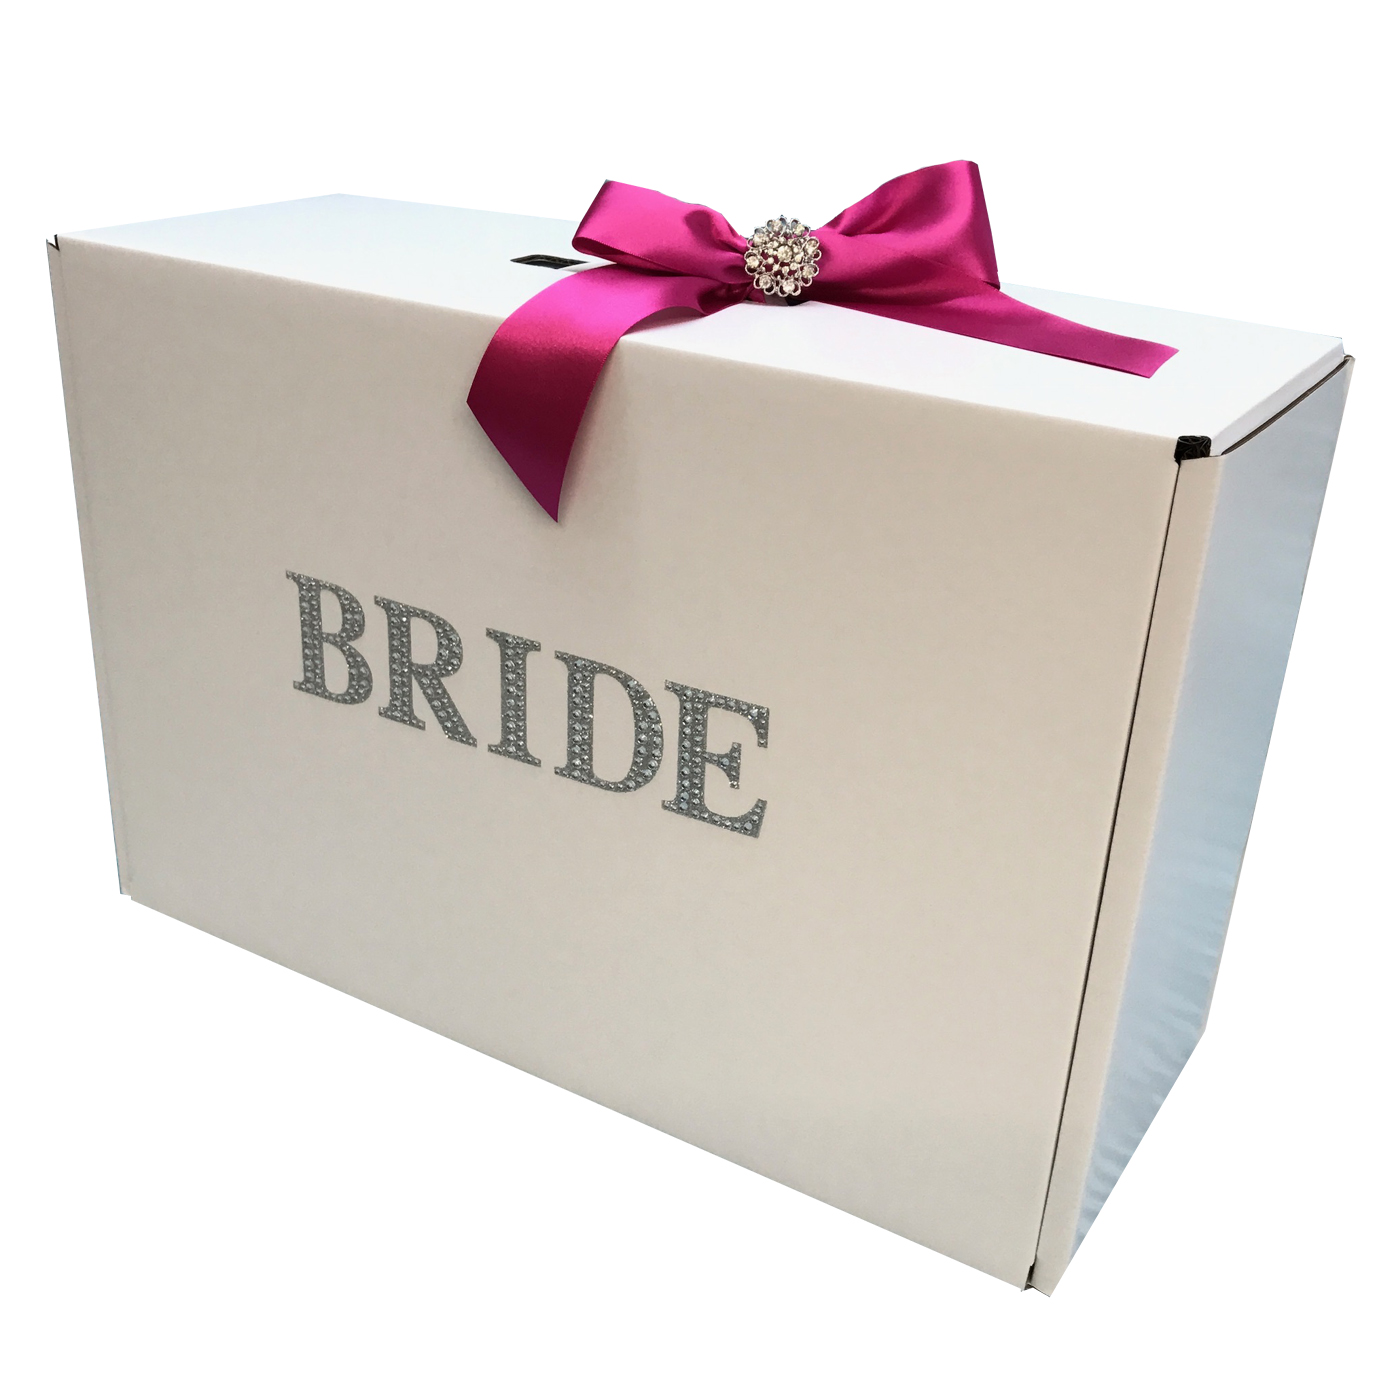 Wedding Gown Boxes: Bride Show Stopper Travel Box